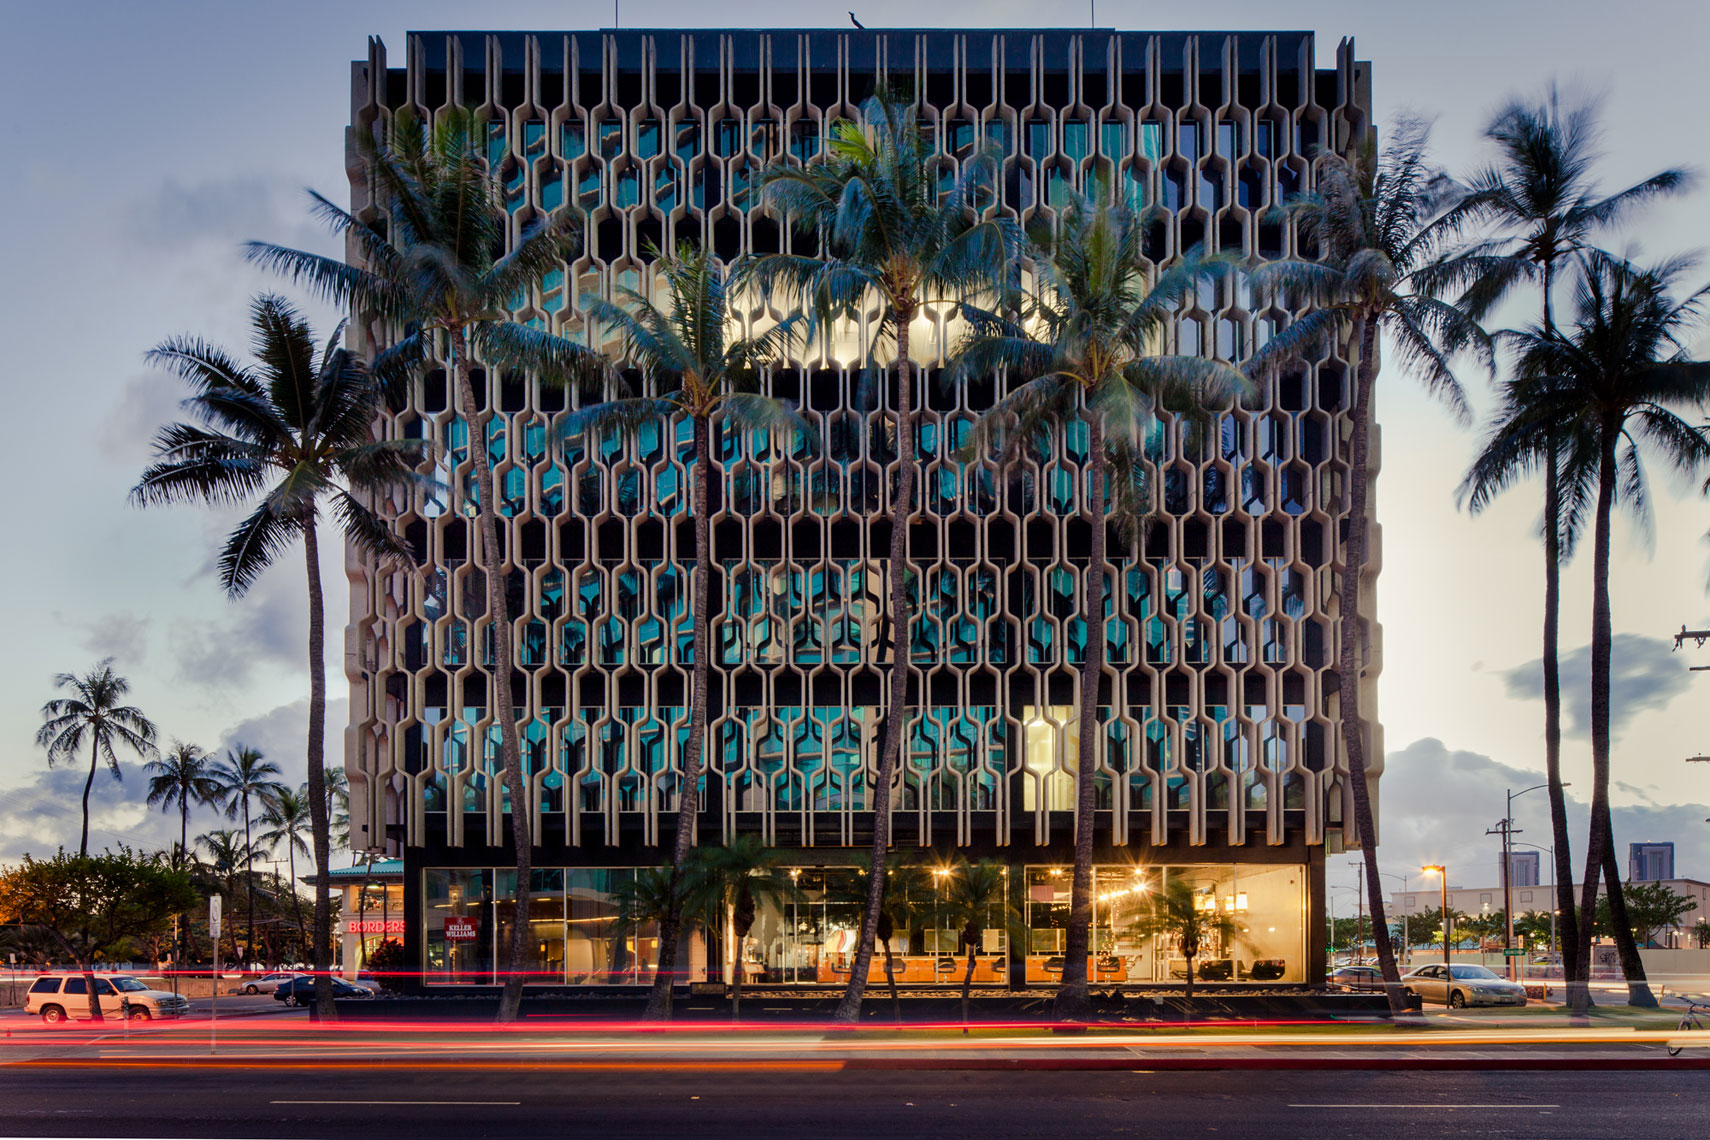 jeff-green-ibm-building-honolulu-hawaii-exterior-architecture